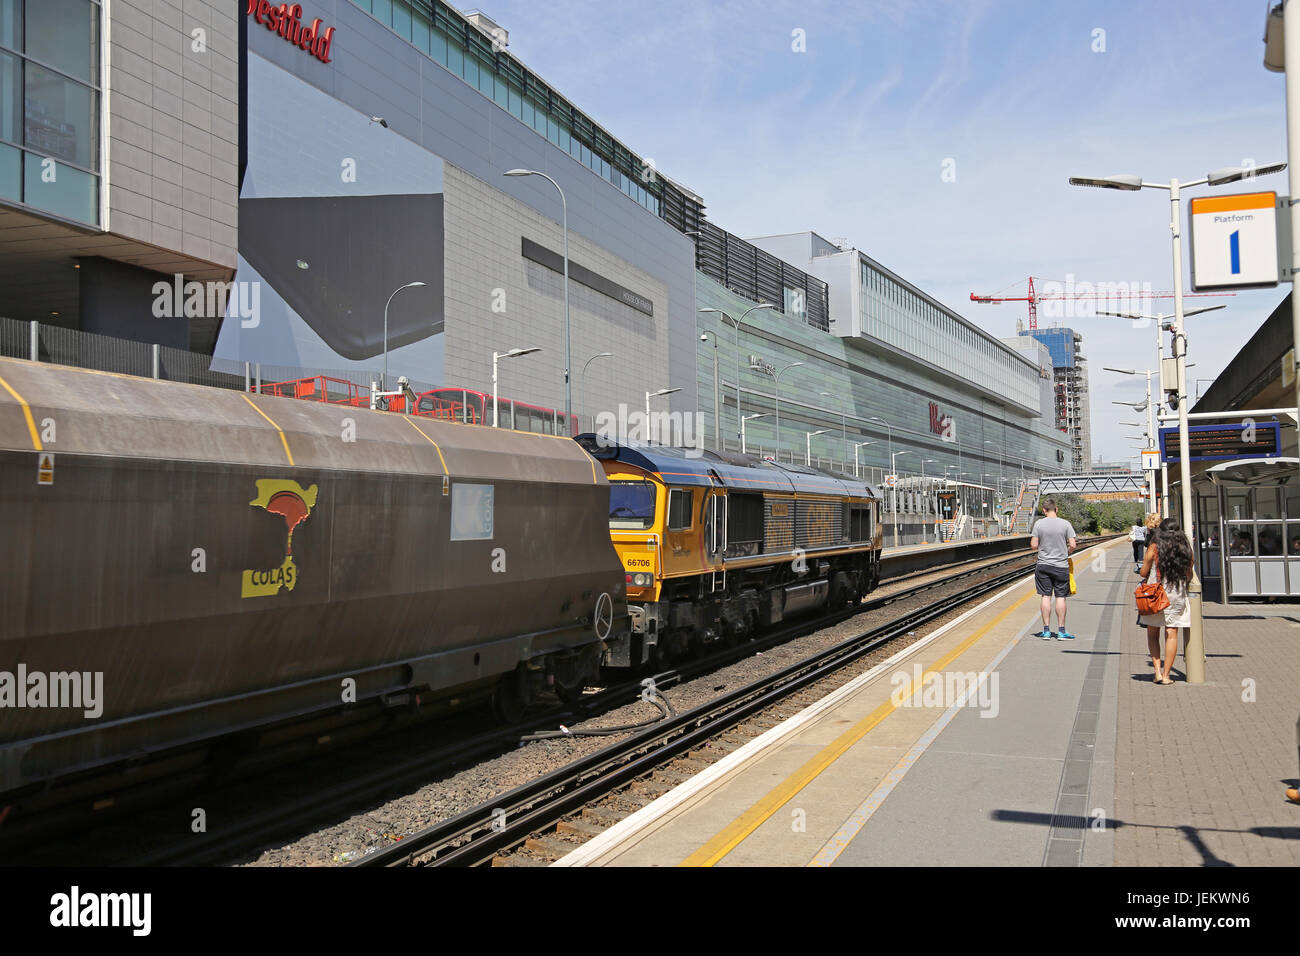 A goods train passes through the newly constructed Shepherds Bush station, next to the Westfield Shopping centre - Stock Image